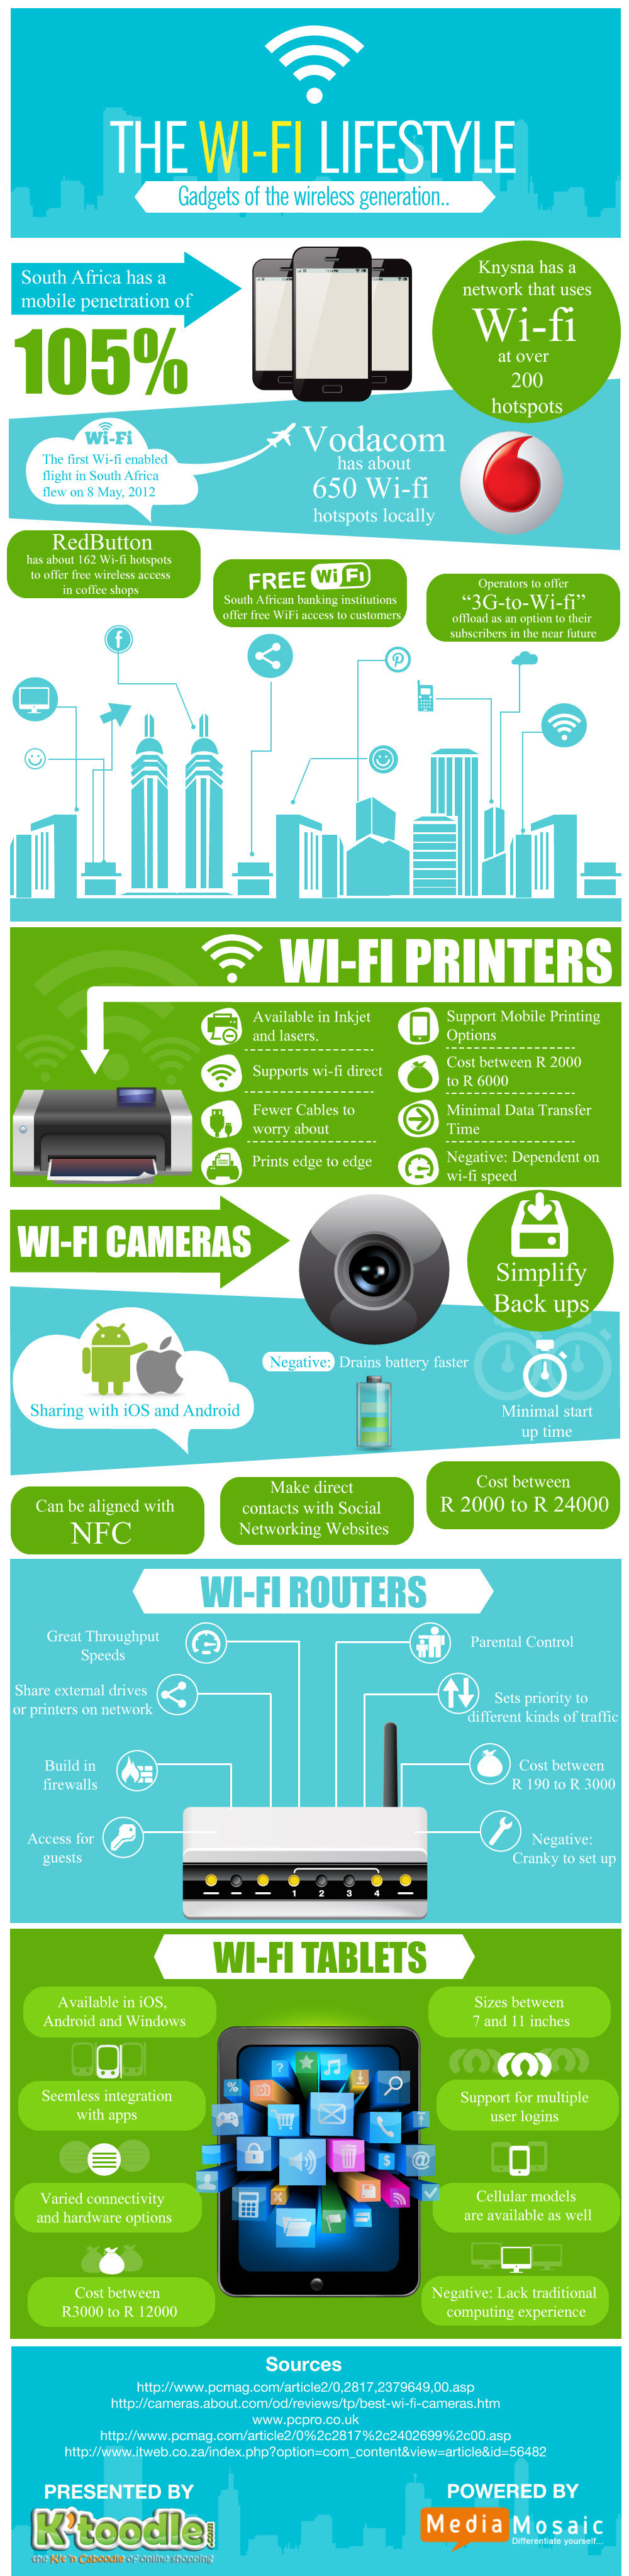 Infographic: The Wi-fi Lifestyle Gadgets of the Wireless Generation